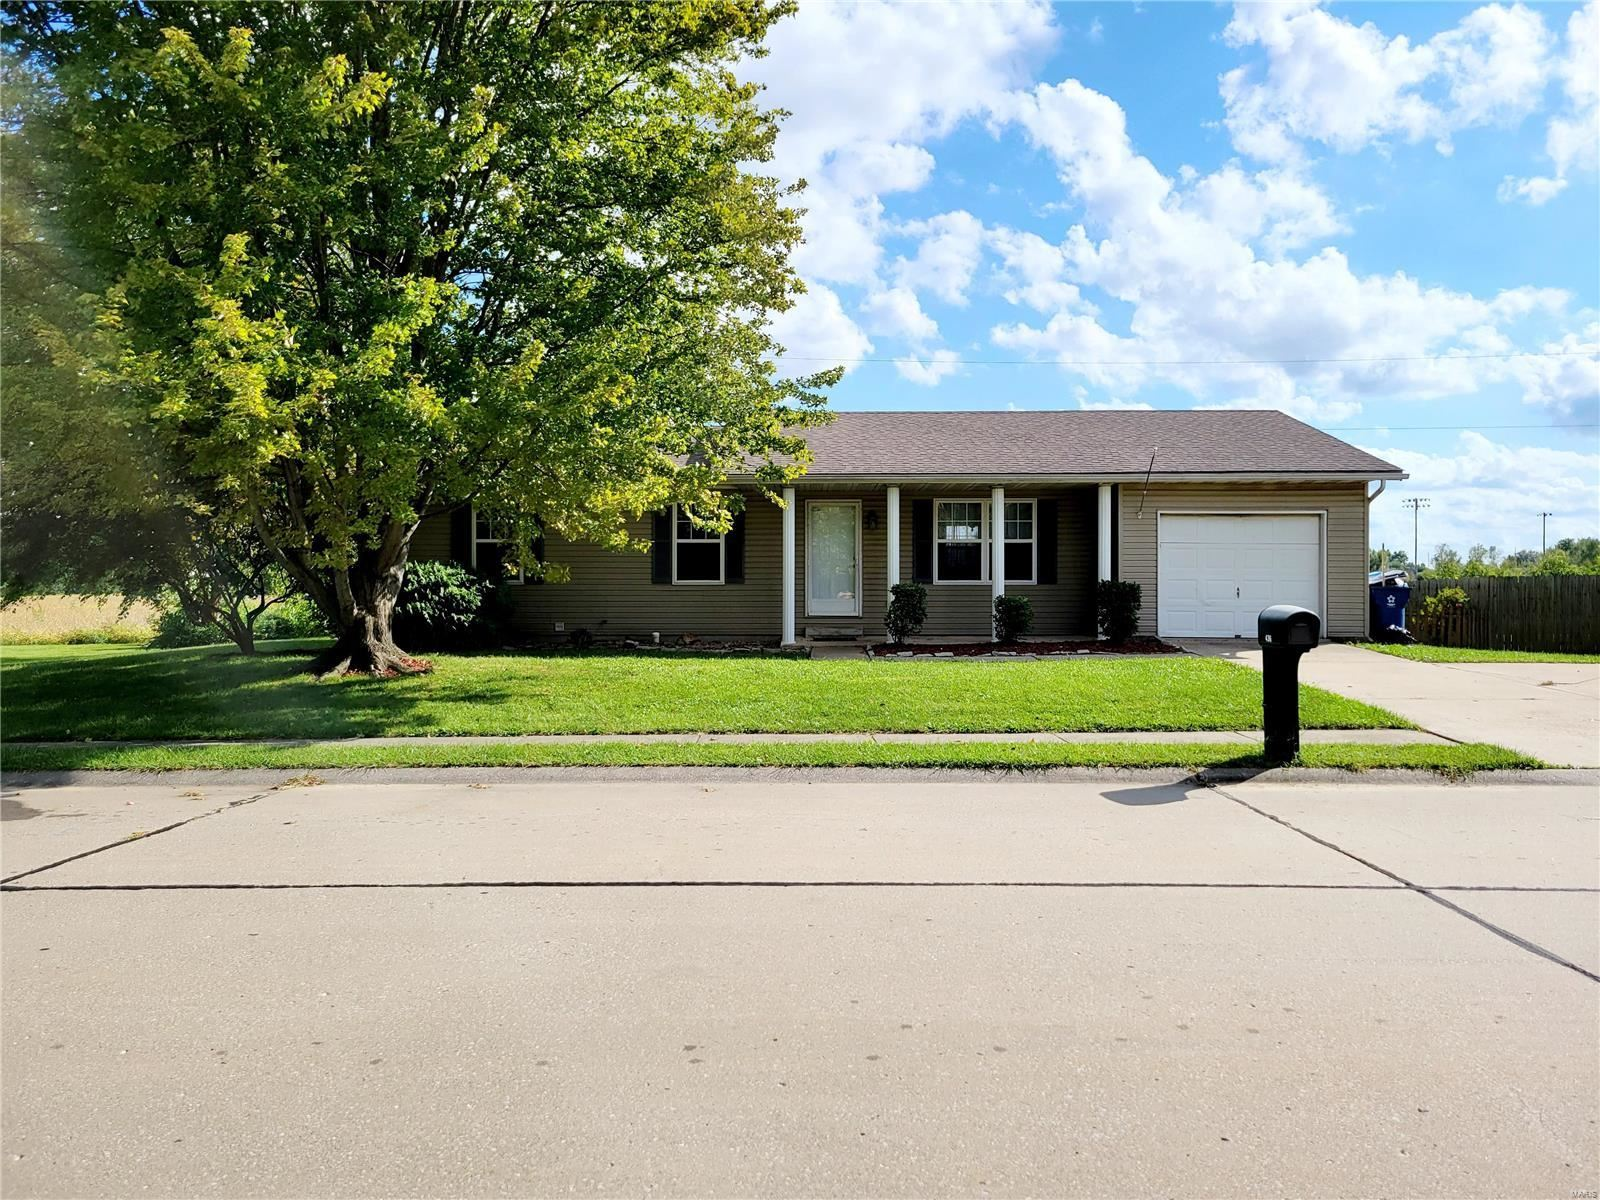 436 Orchard Ct, Troy, IL 62294 - #: 21064735